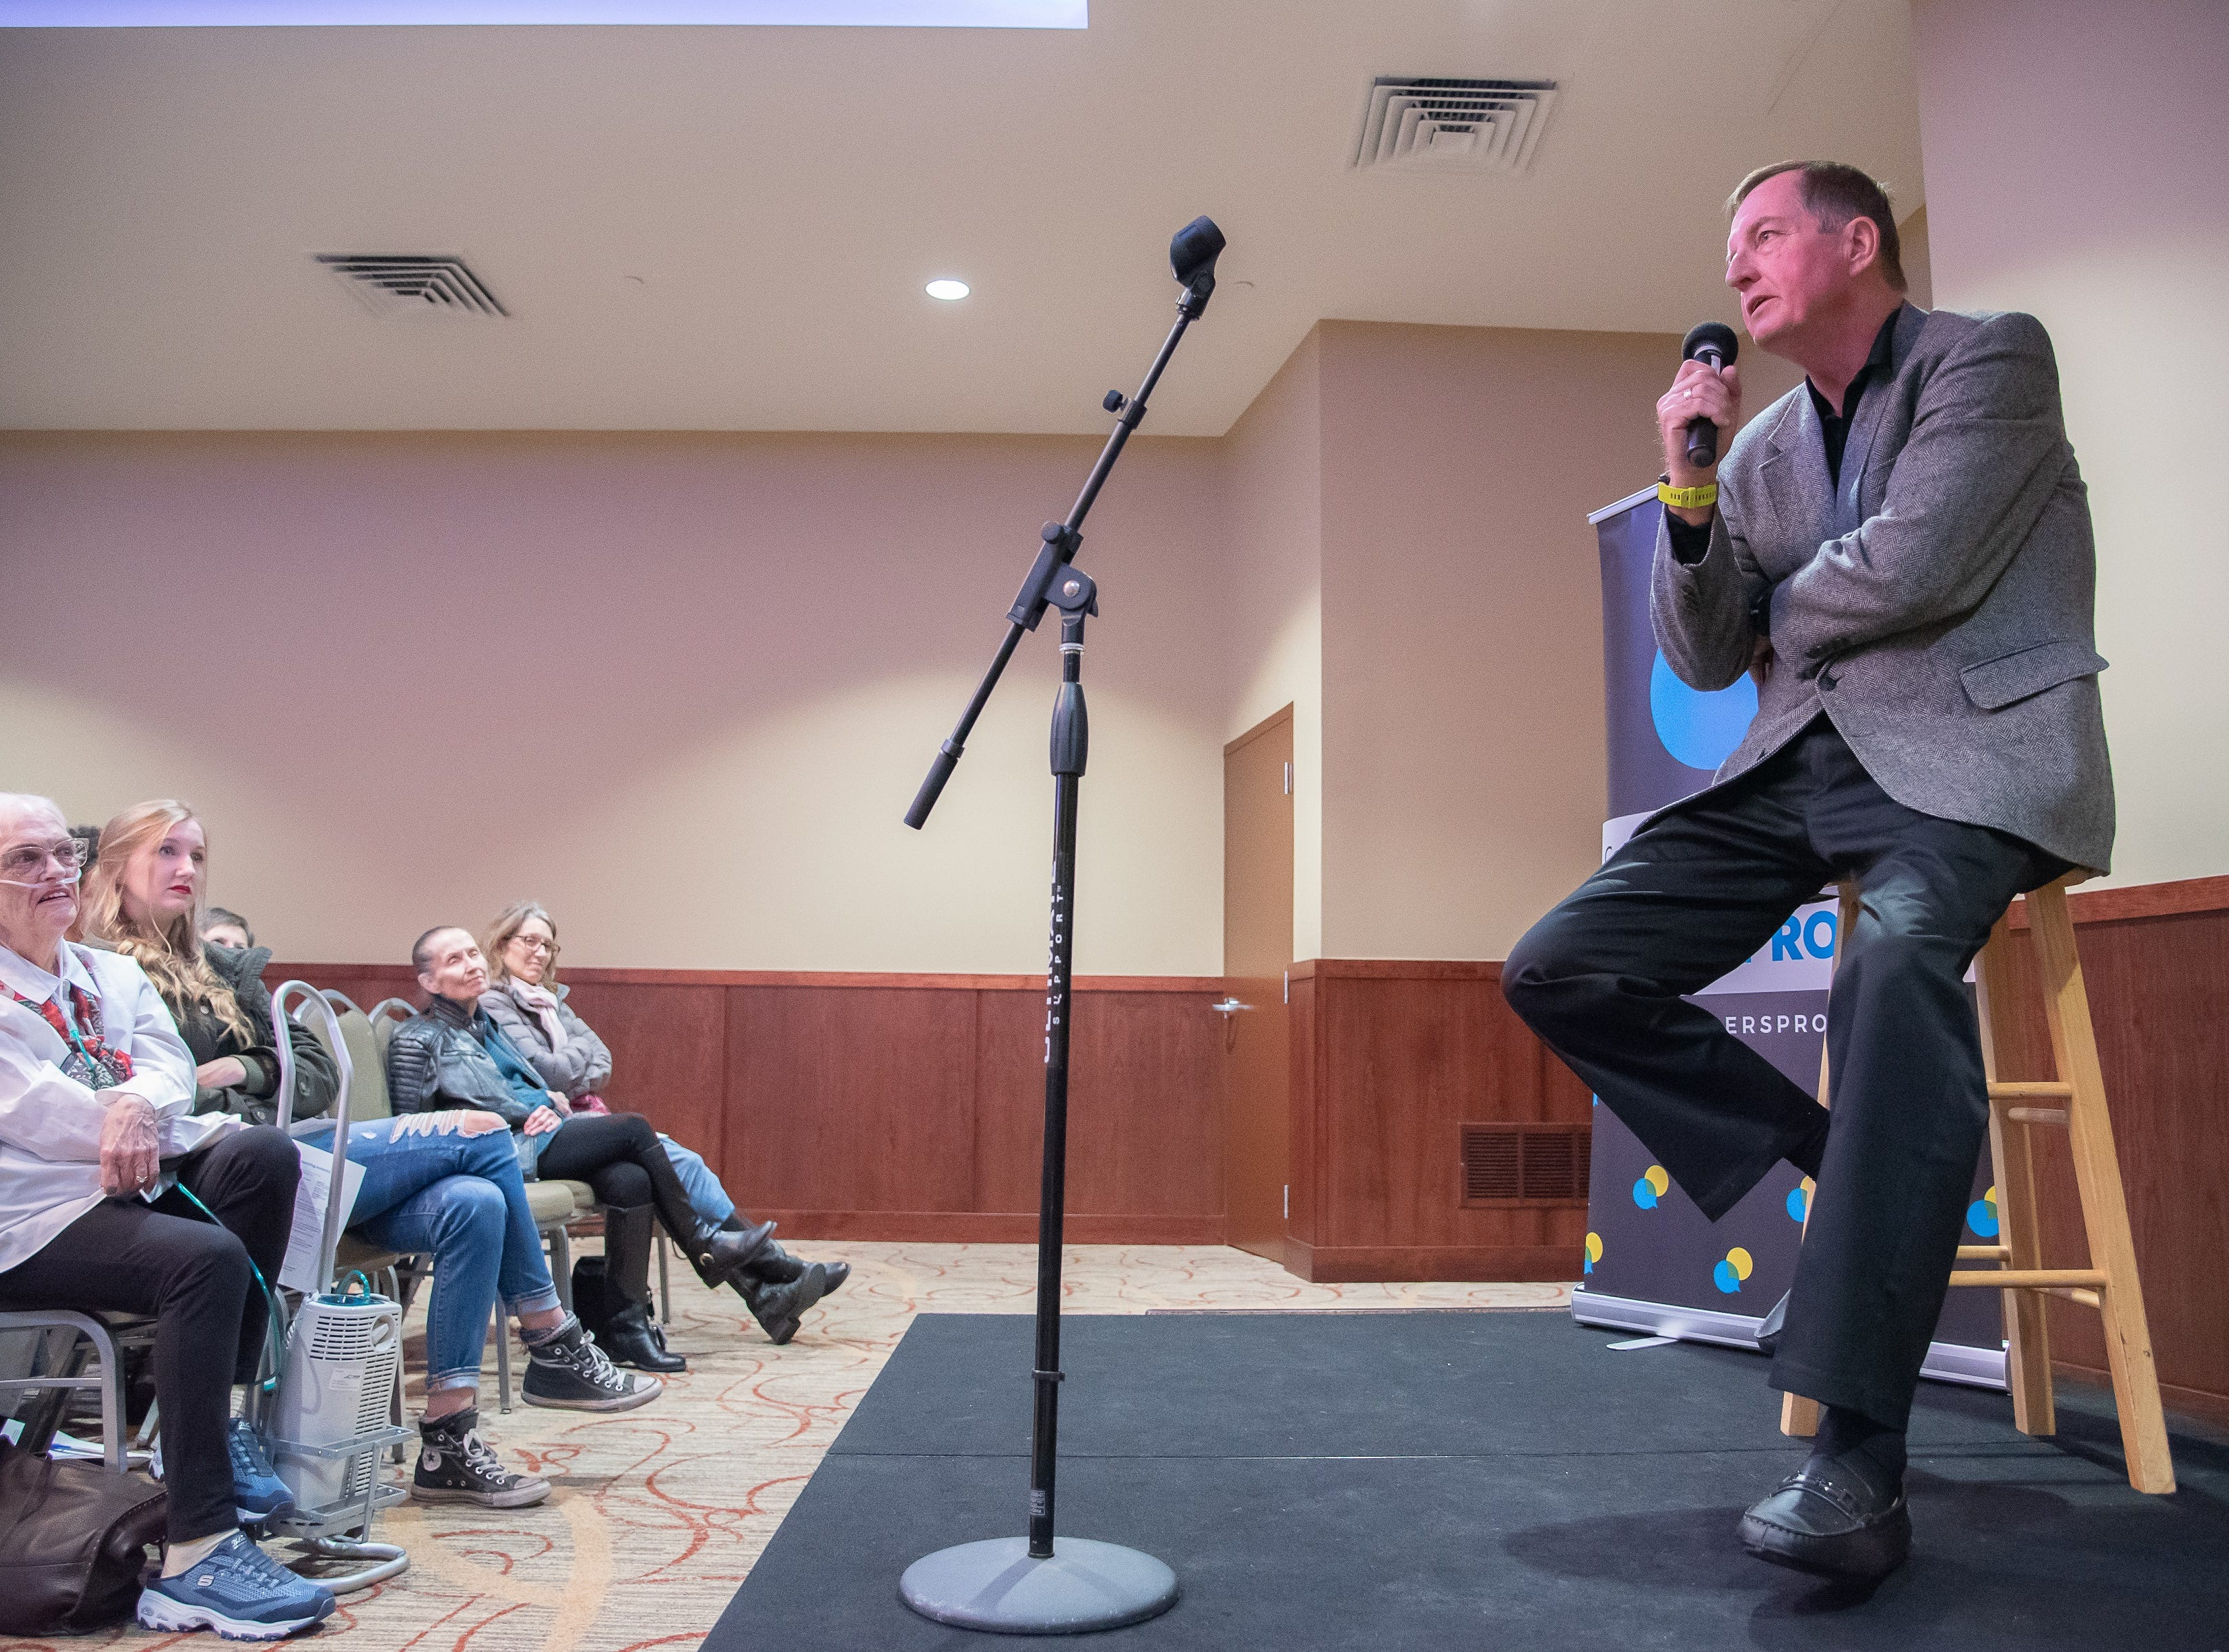 Storyteller Tim Dolan tells a story of his teenage years and his relationship with his father during the Coloradoan Storytellers Project at Lincoln Center on Tuesday, December 11, 2018.